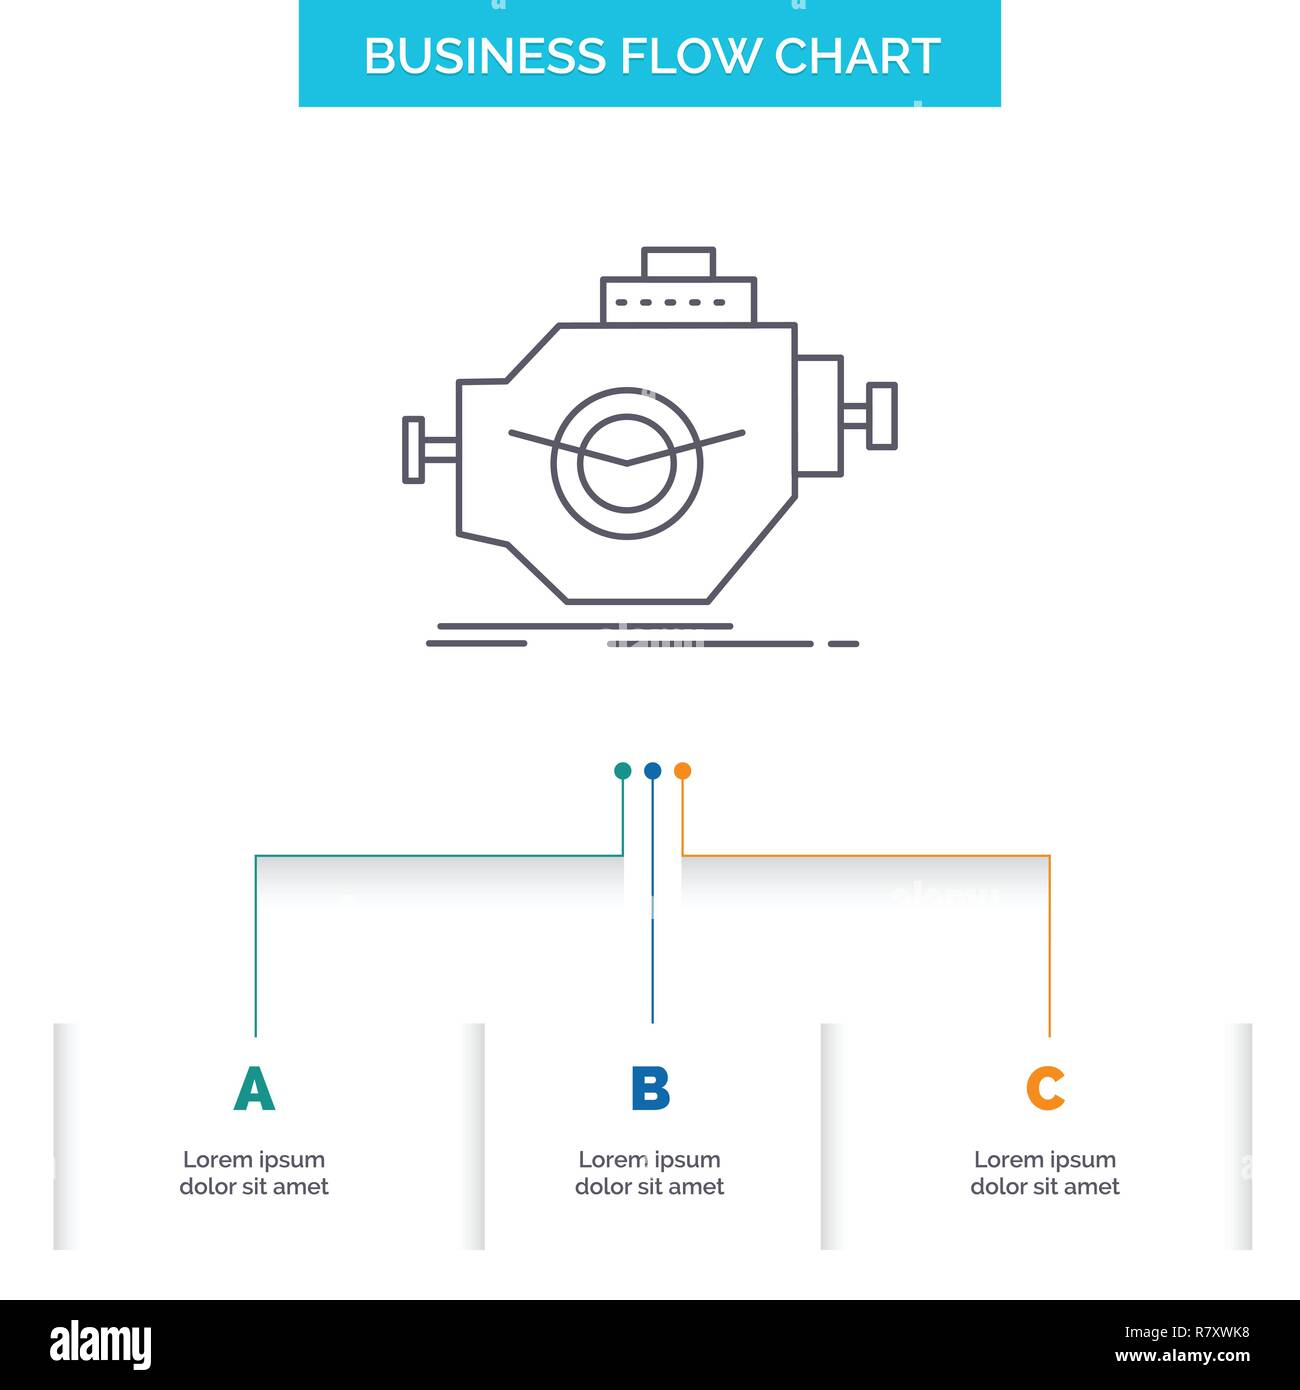 hight resolution of engine industry machine motor performance business flow chart design with 3 steps line icon for presentation background template place for text